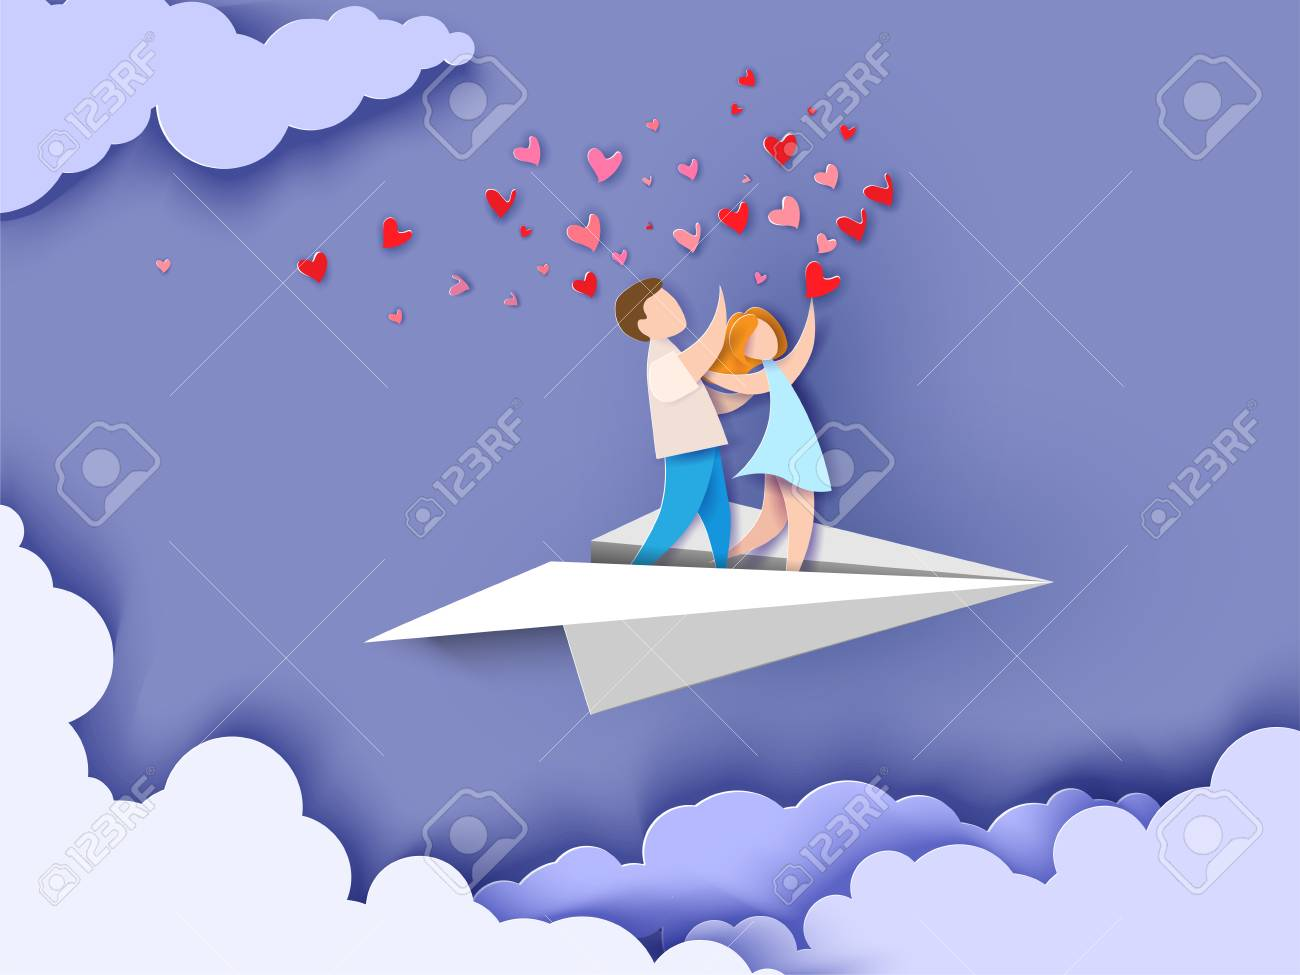 Valentines day card. Abstract background with couple in love flying on paper airplane, hearts and blue sky. Vector illustration. Paper cut and craft style. - 94781431